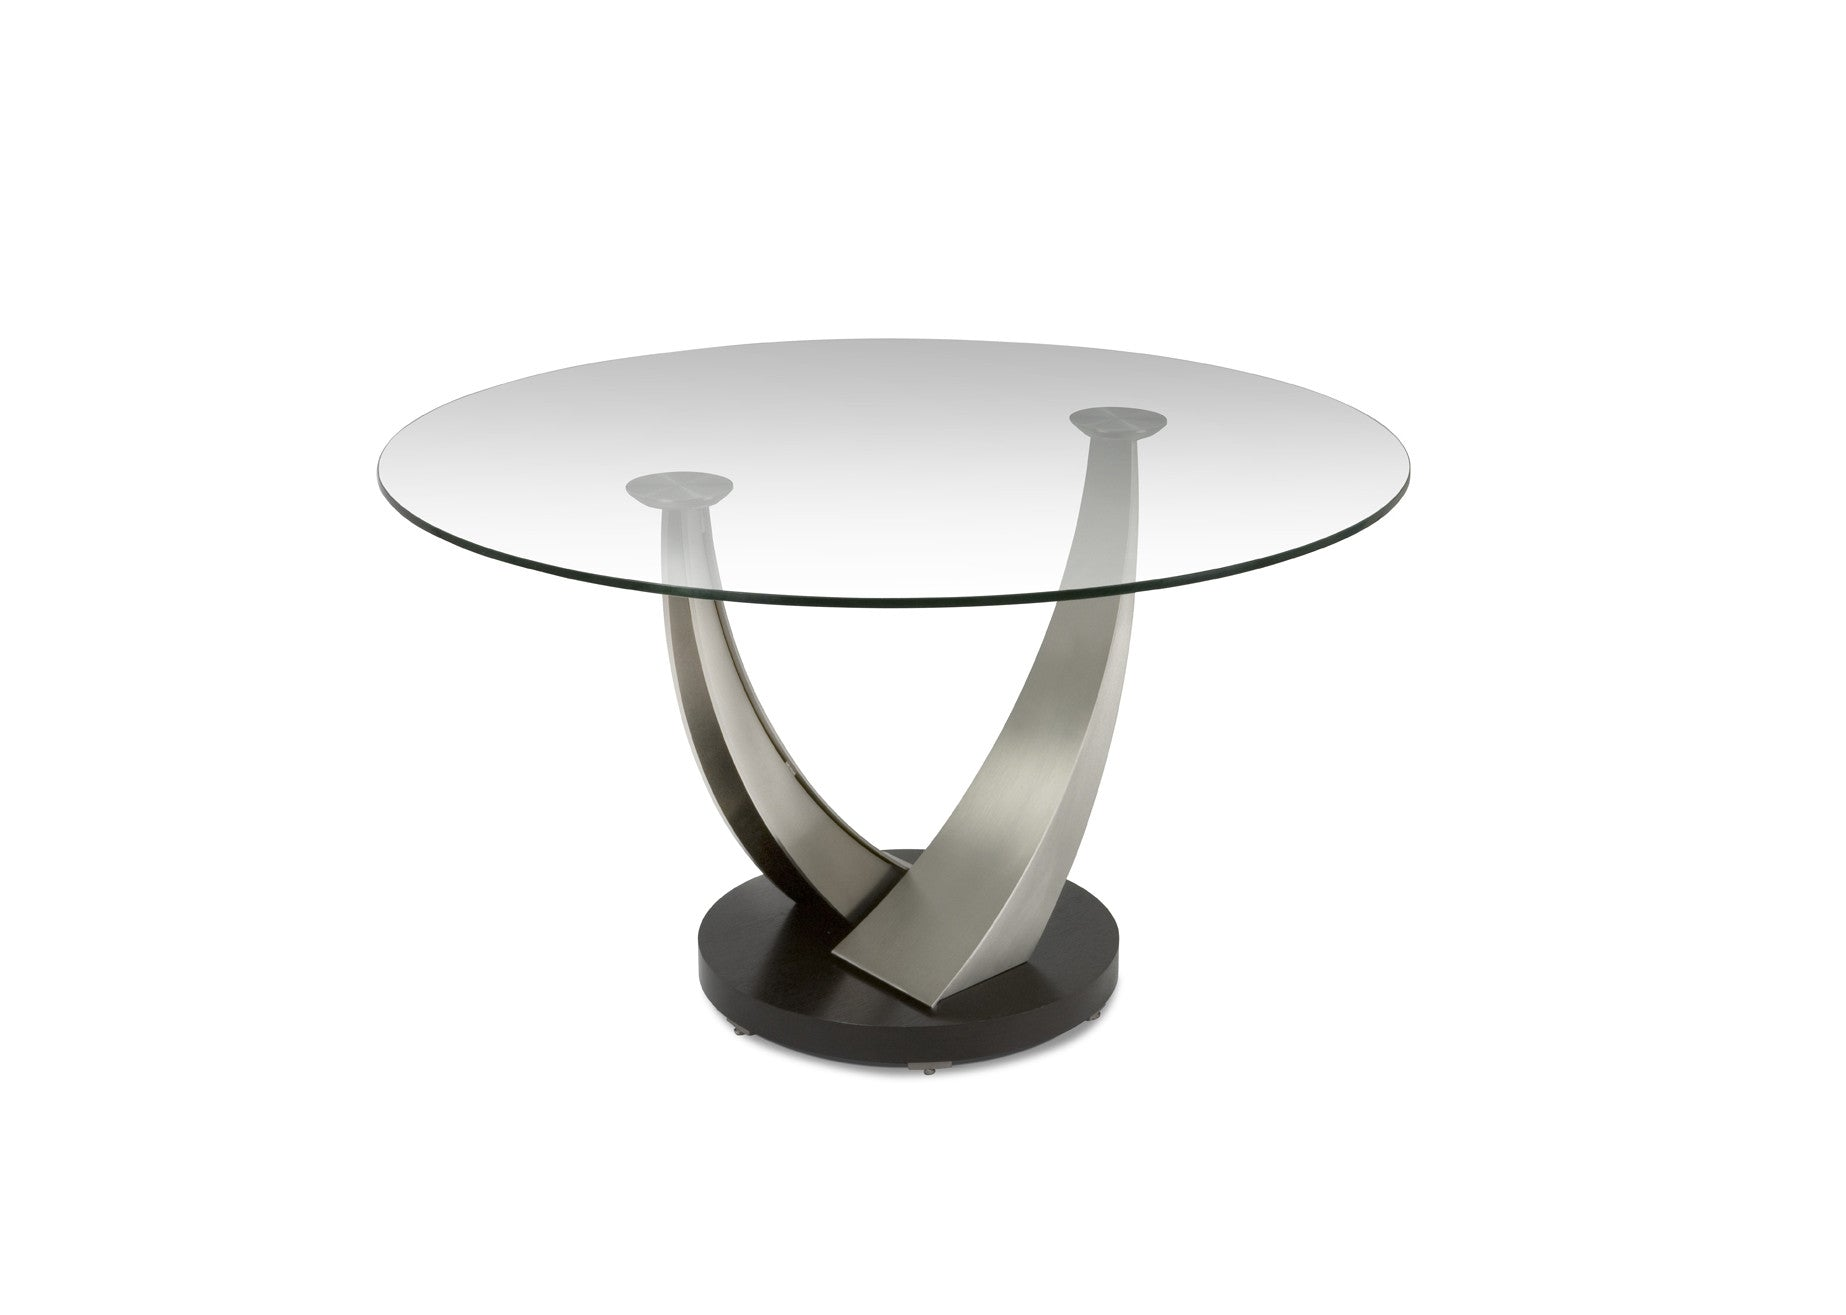 Tangent Round Dining Table (342RND)